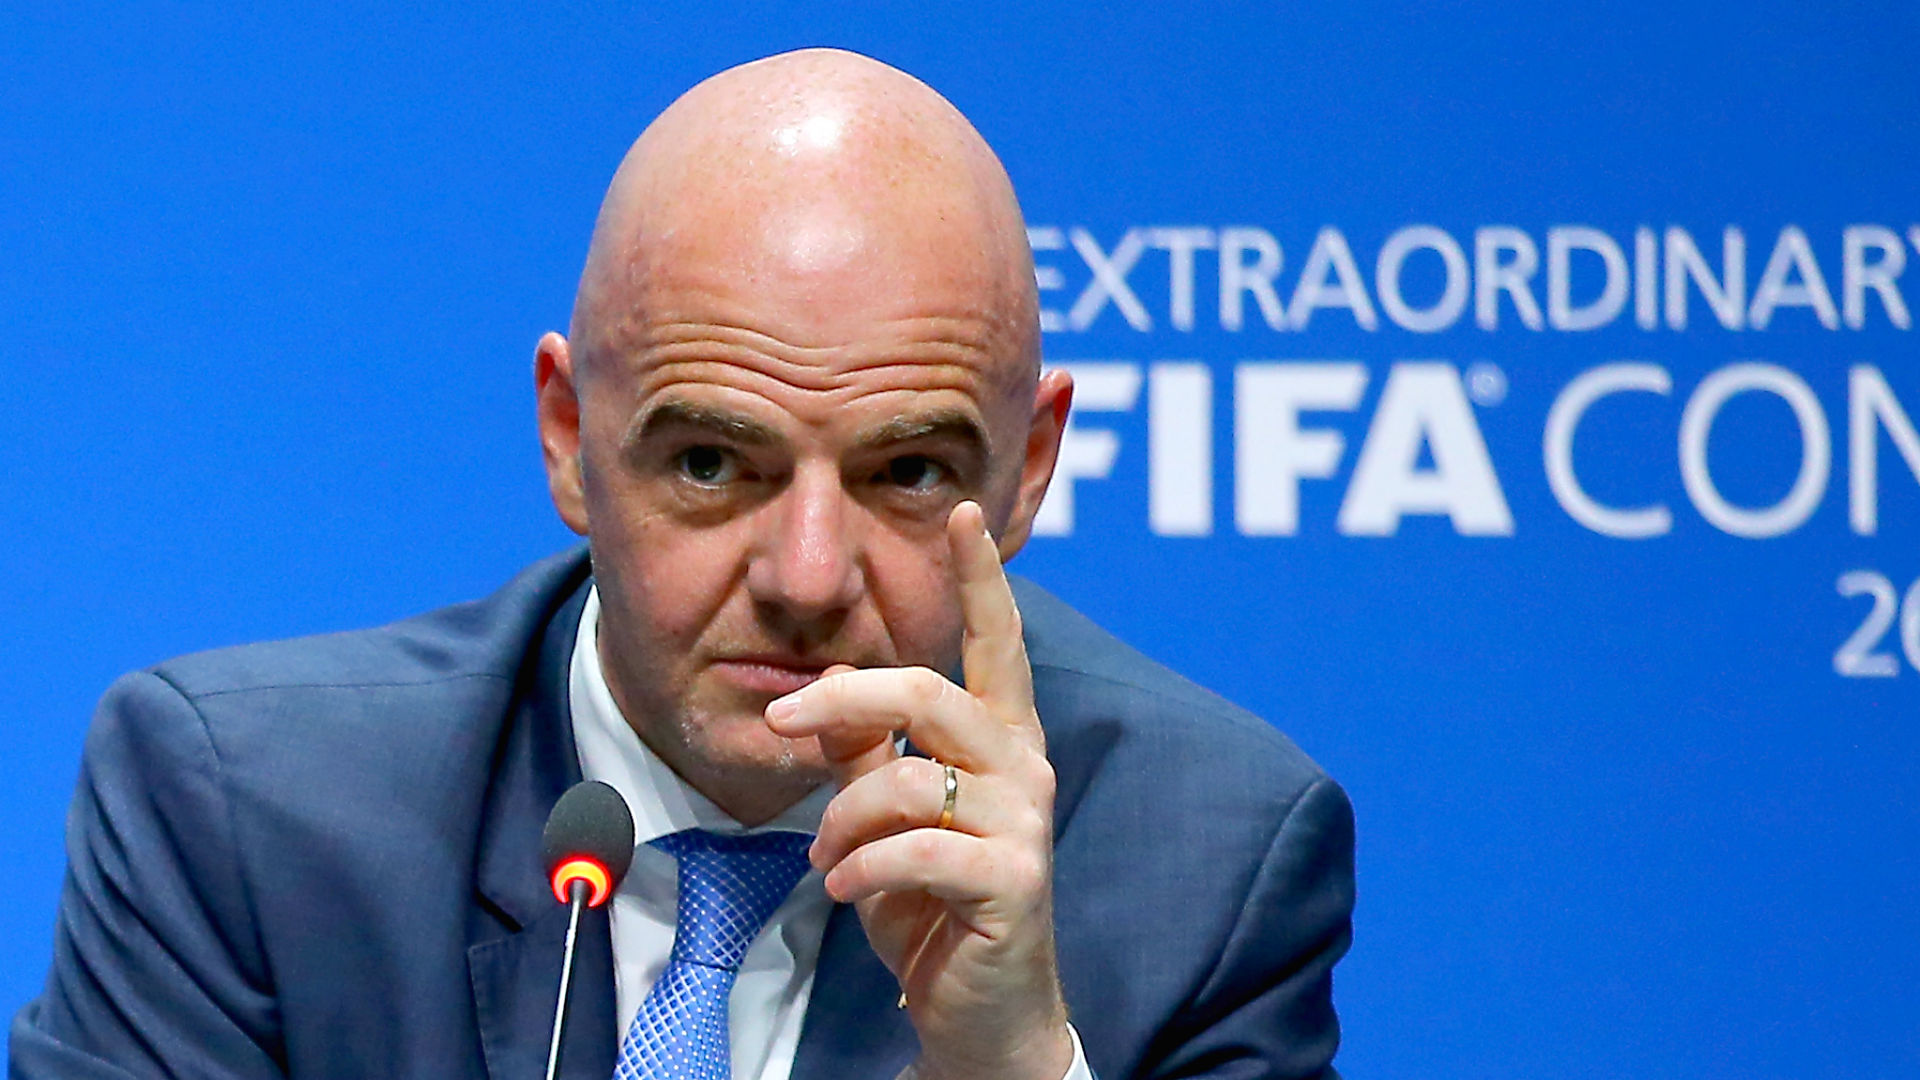 President, Gianni Infantino has stated that his organisation's decision to expand the World Cup is in the best interests of the global game. Some are not buying his line given the corrupt history of FIFA.